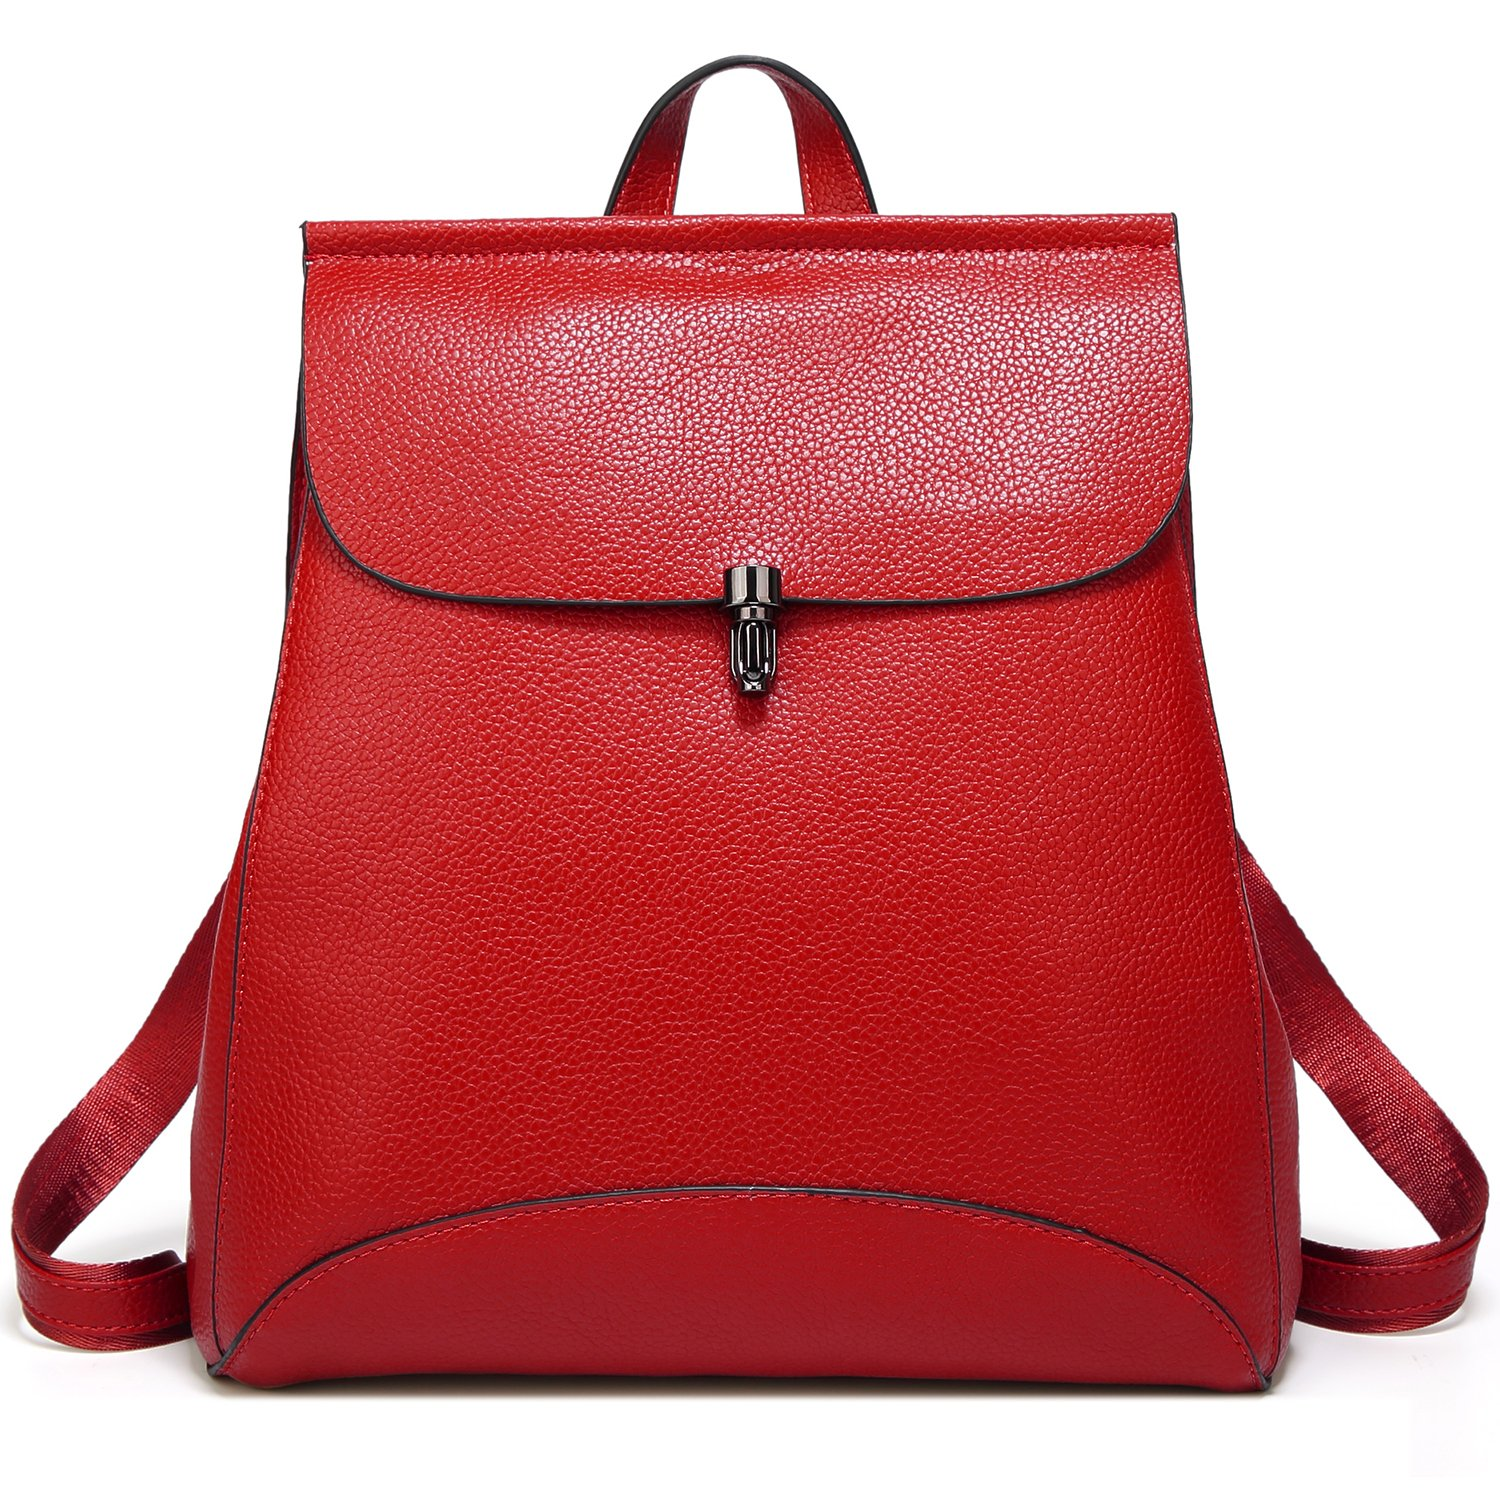 Galleon - SiMYEER Women s Pu Leather Backpack Purse Ladies Casual Shoulder  Bag School Bag For Girls (Red 3) ee4657b3bc